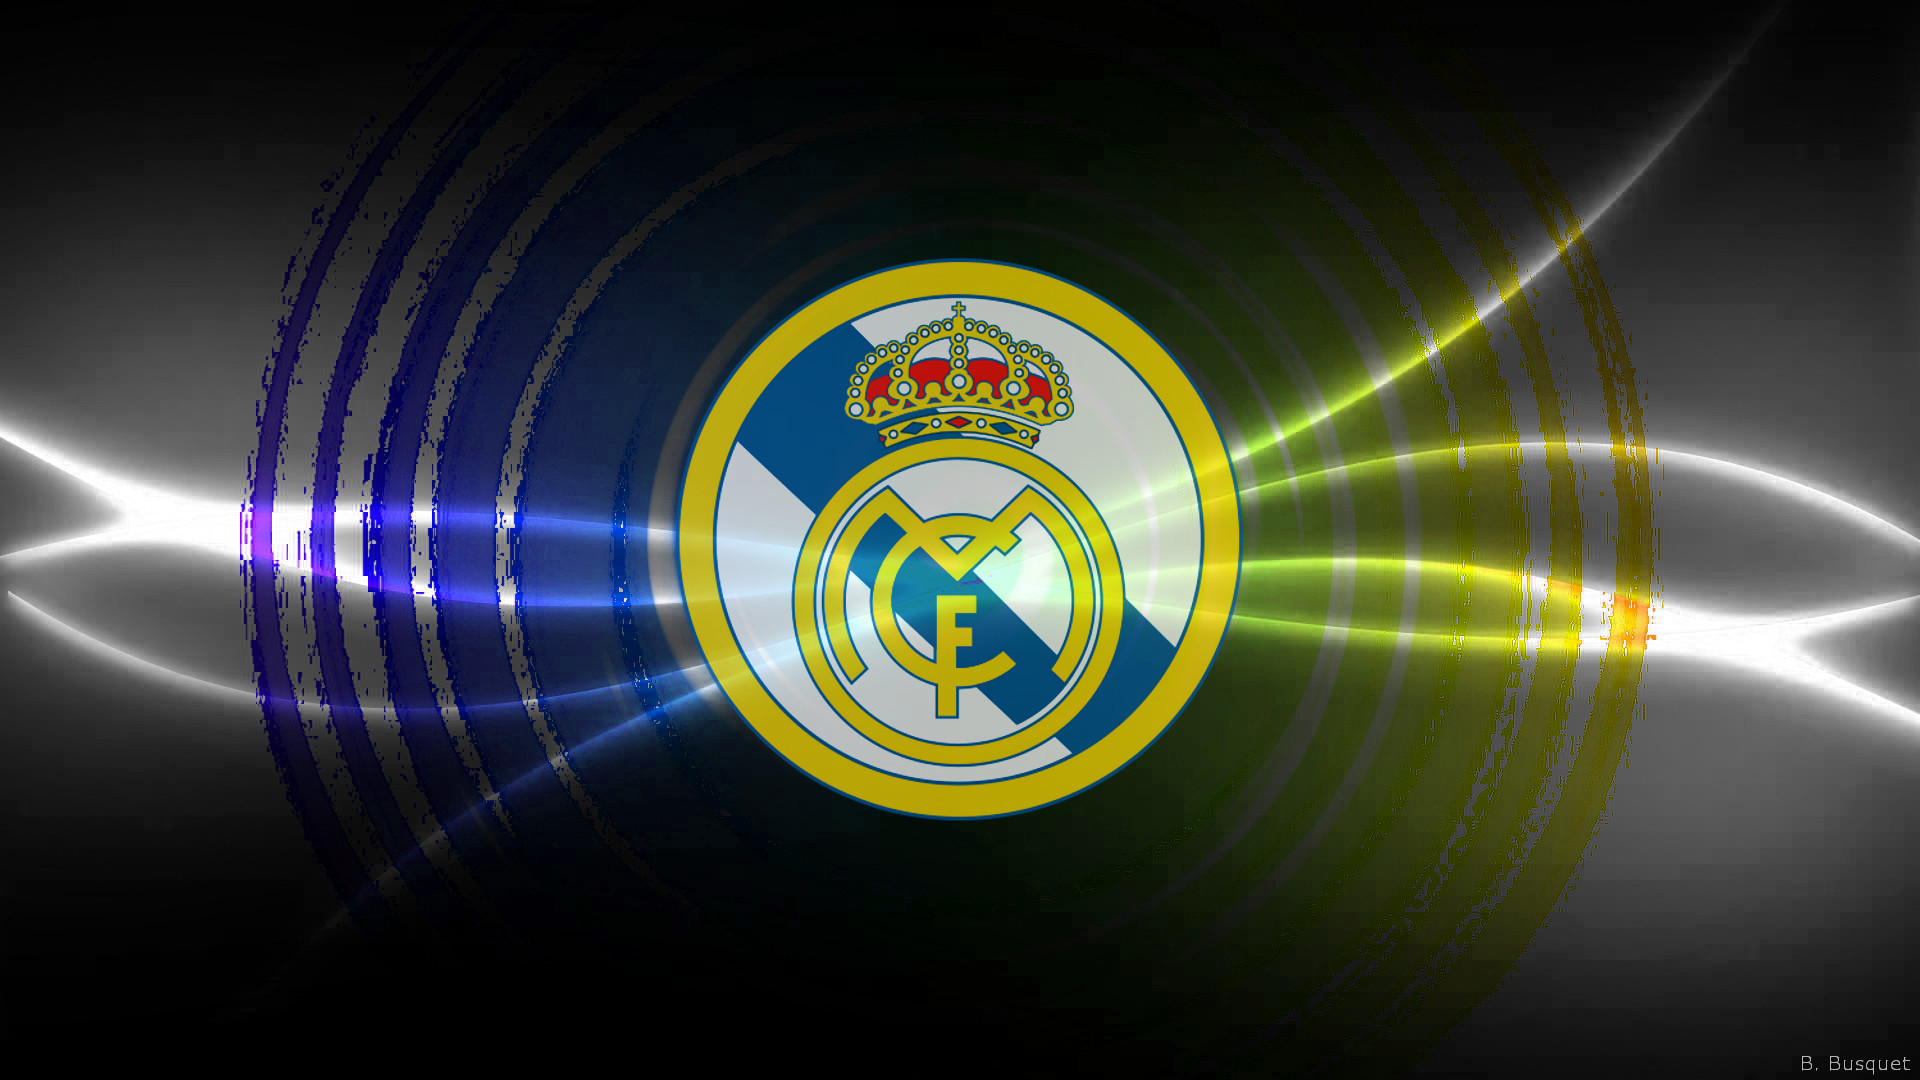 Res: 1920x1080, silver Madrid FC wallpaper with blue and yellow colors